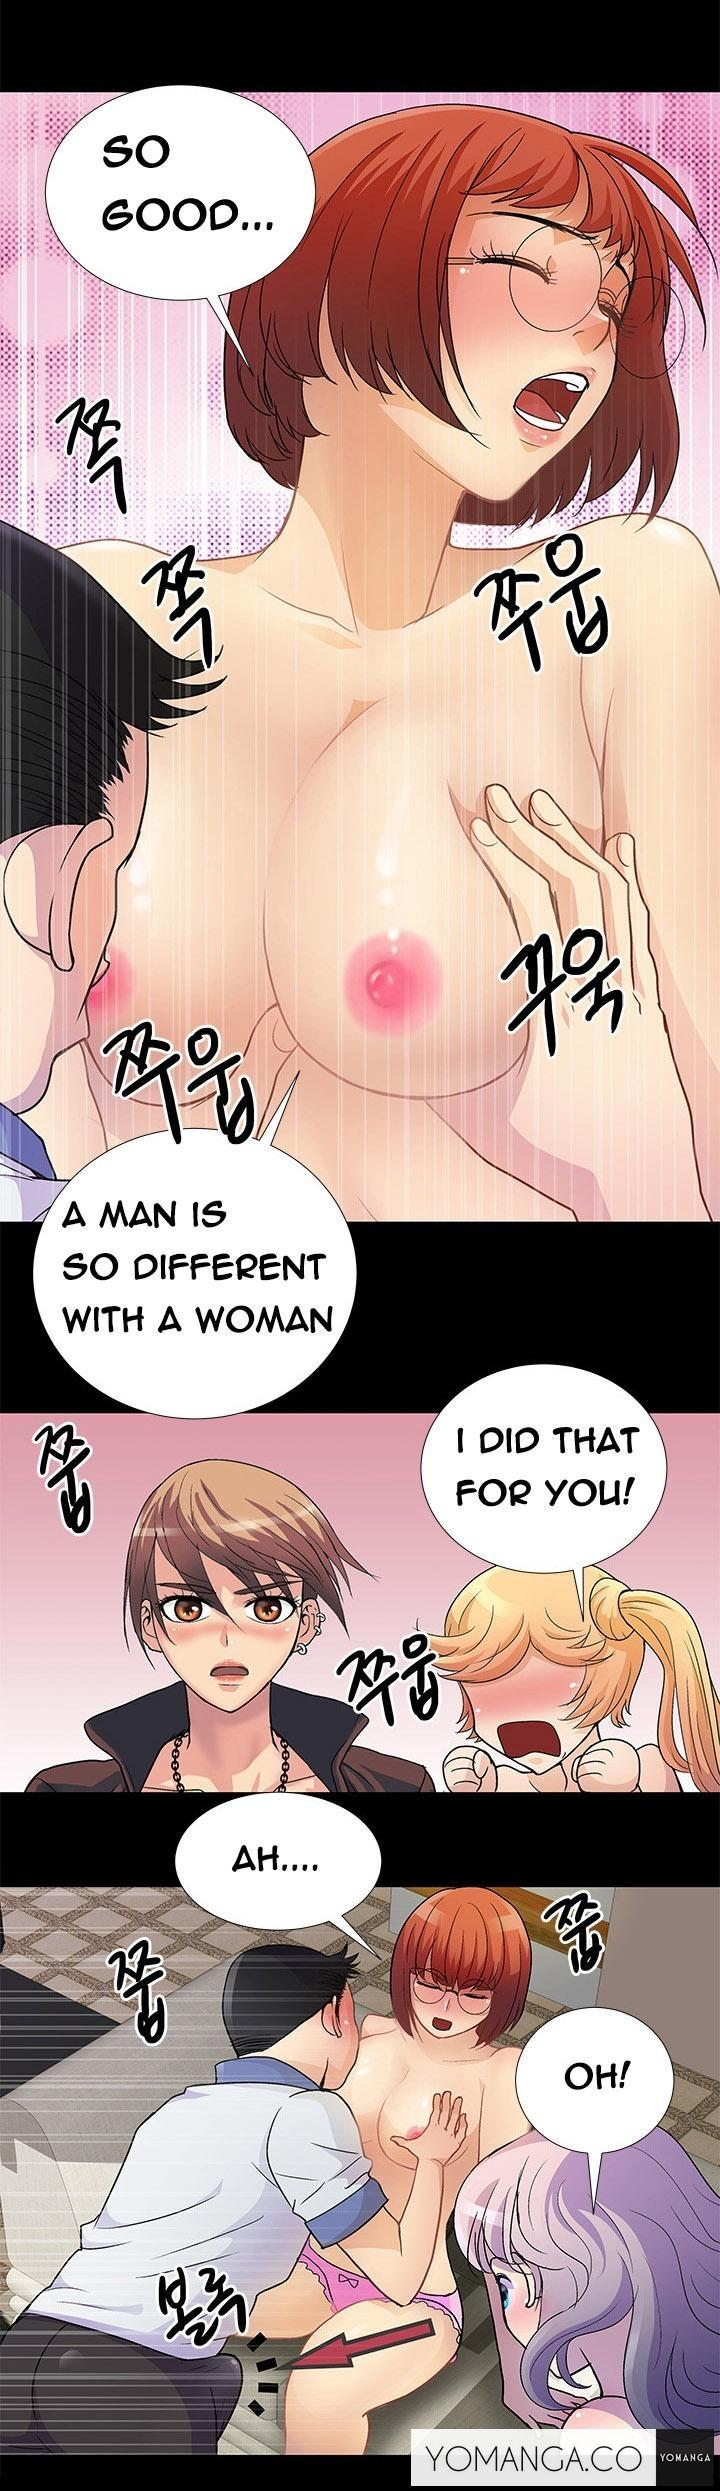 Will You Do as I Say? Ch.1-3 27